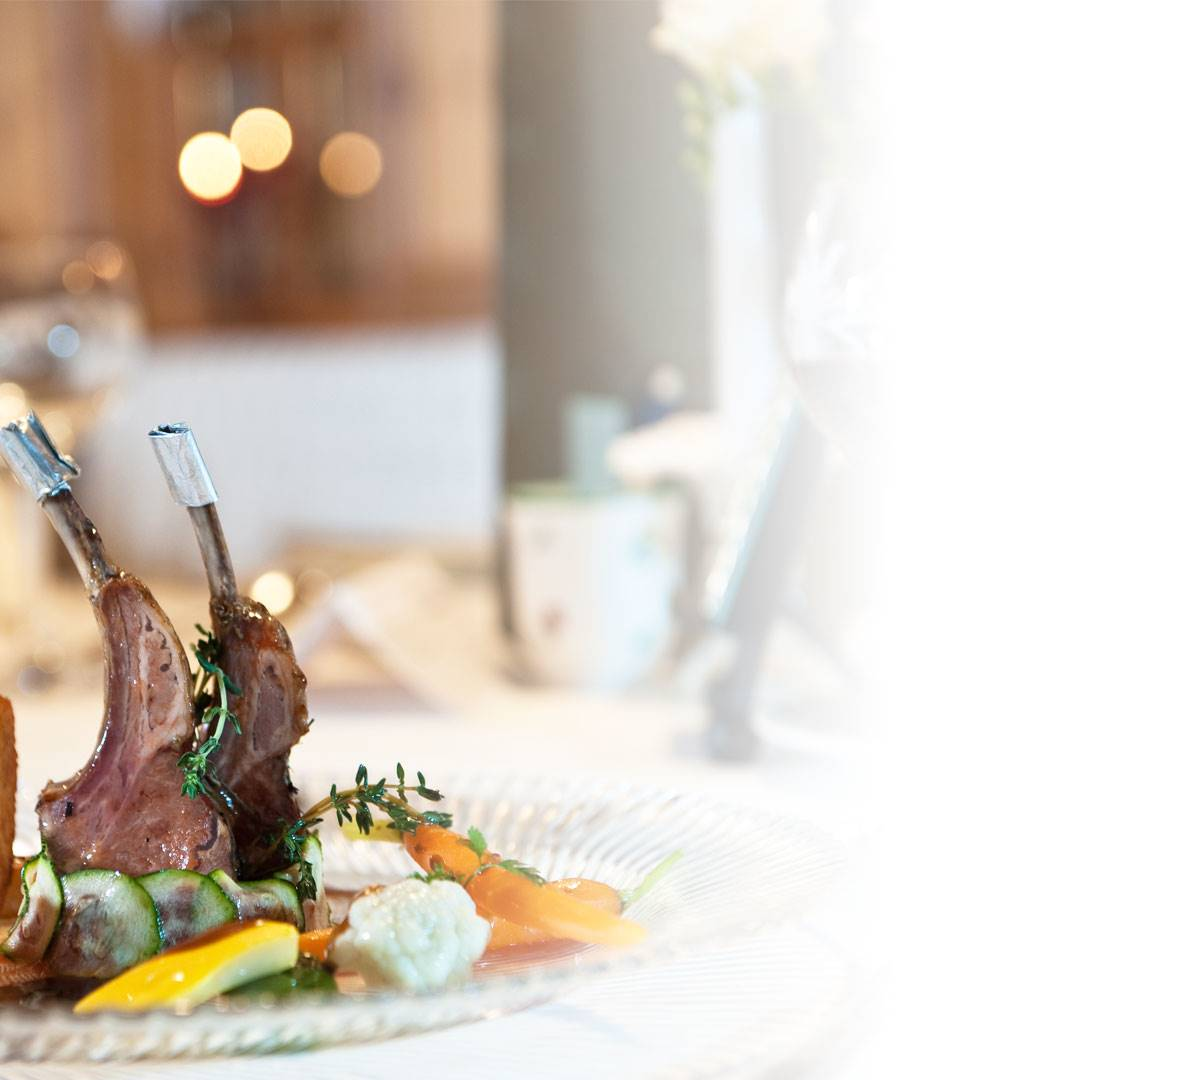 Leg of lamb with side dishes in detail